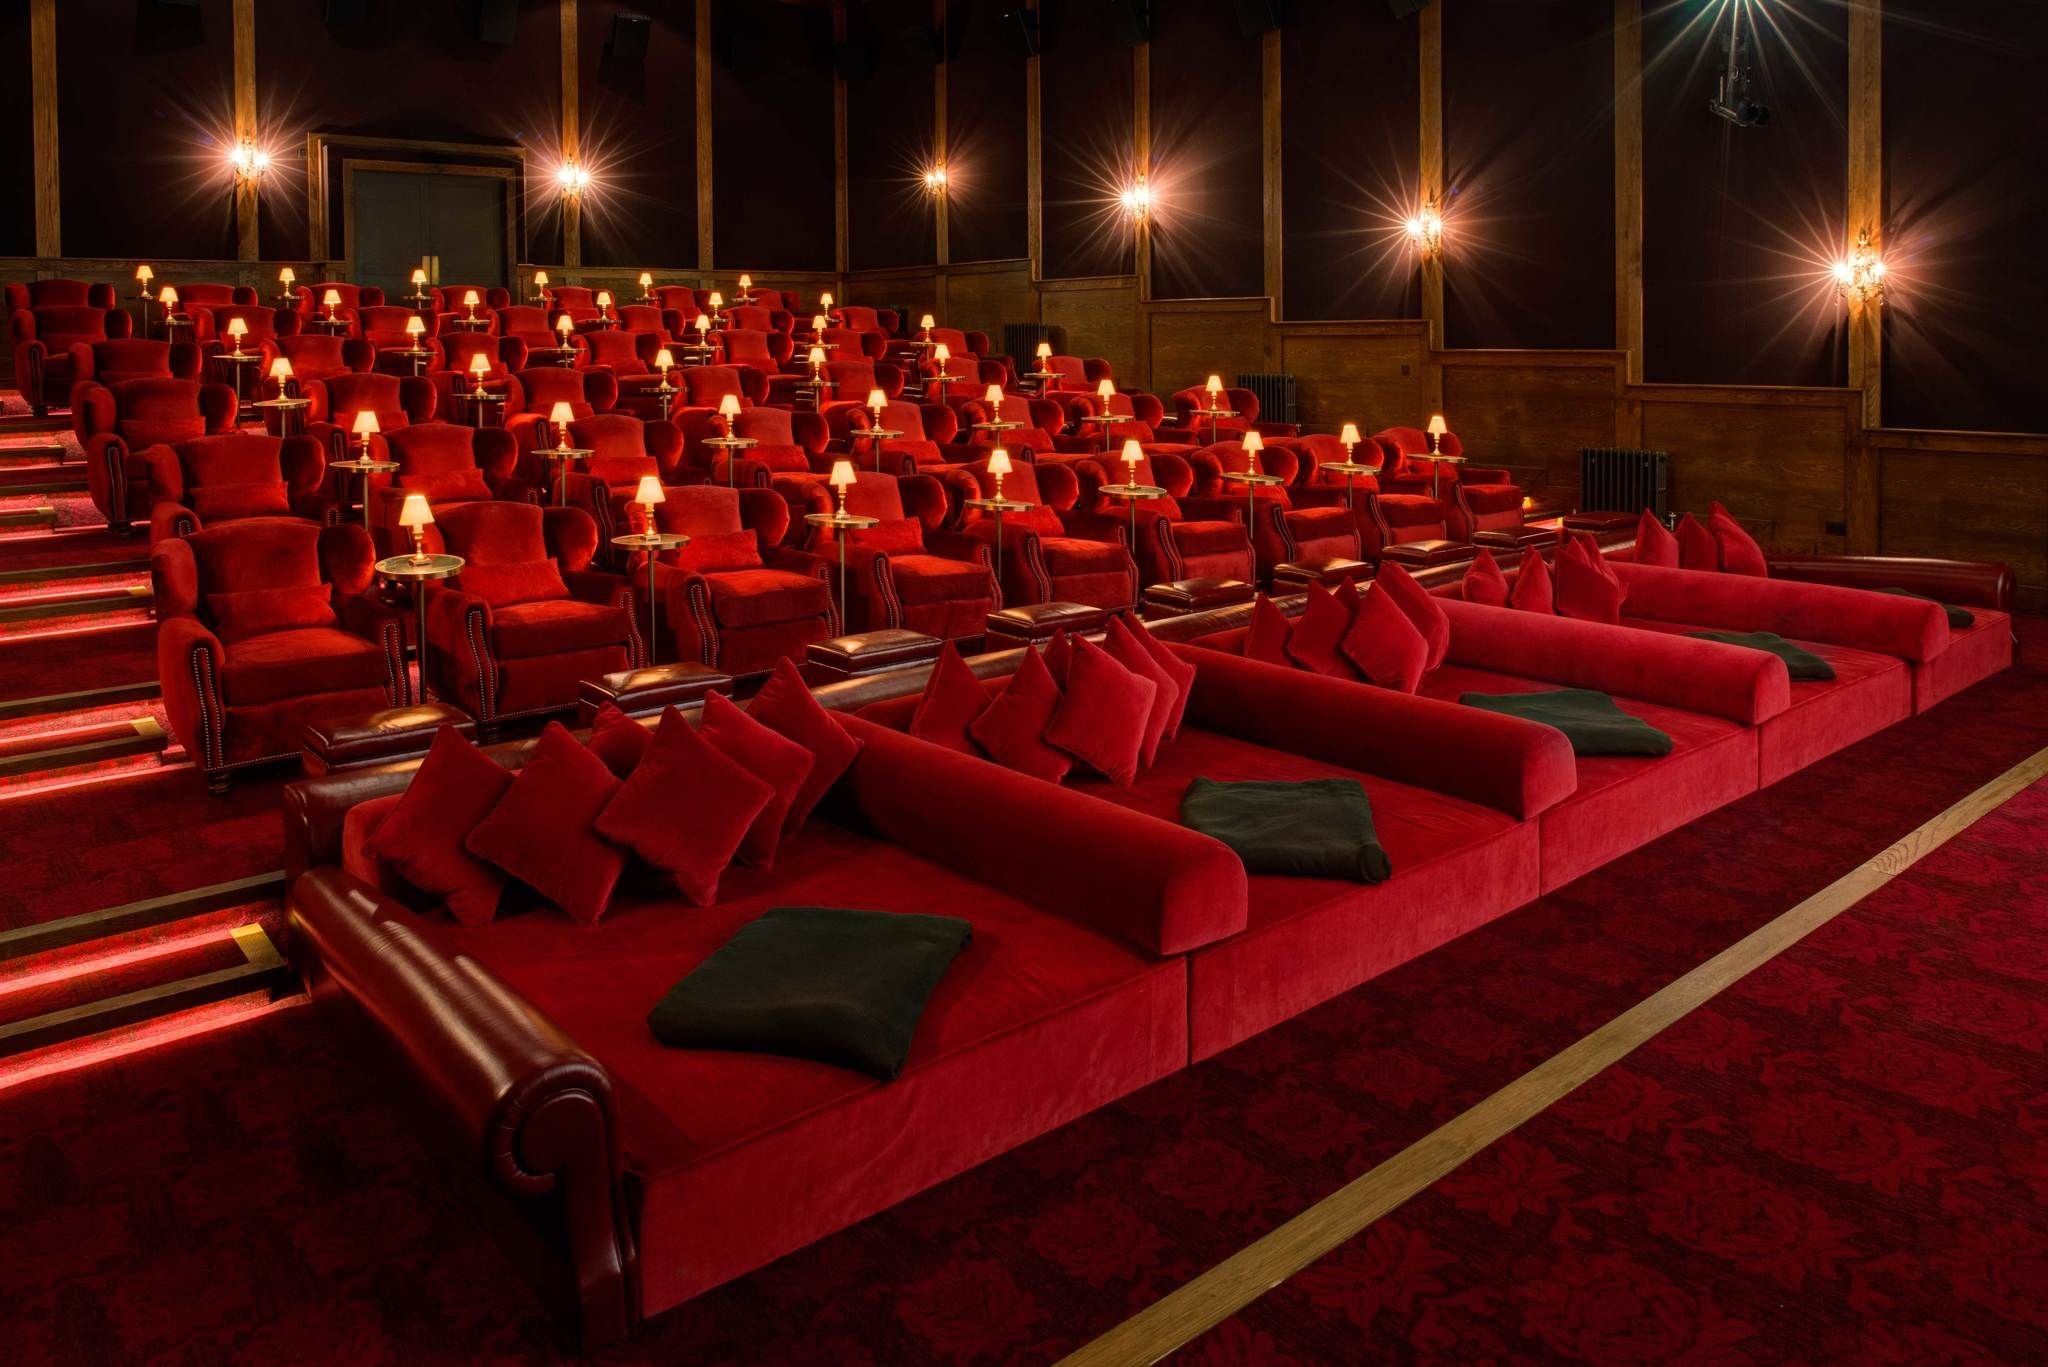 now here's a private theater